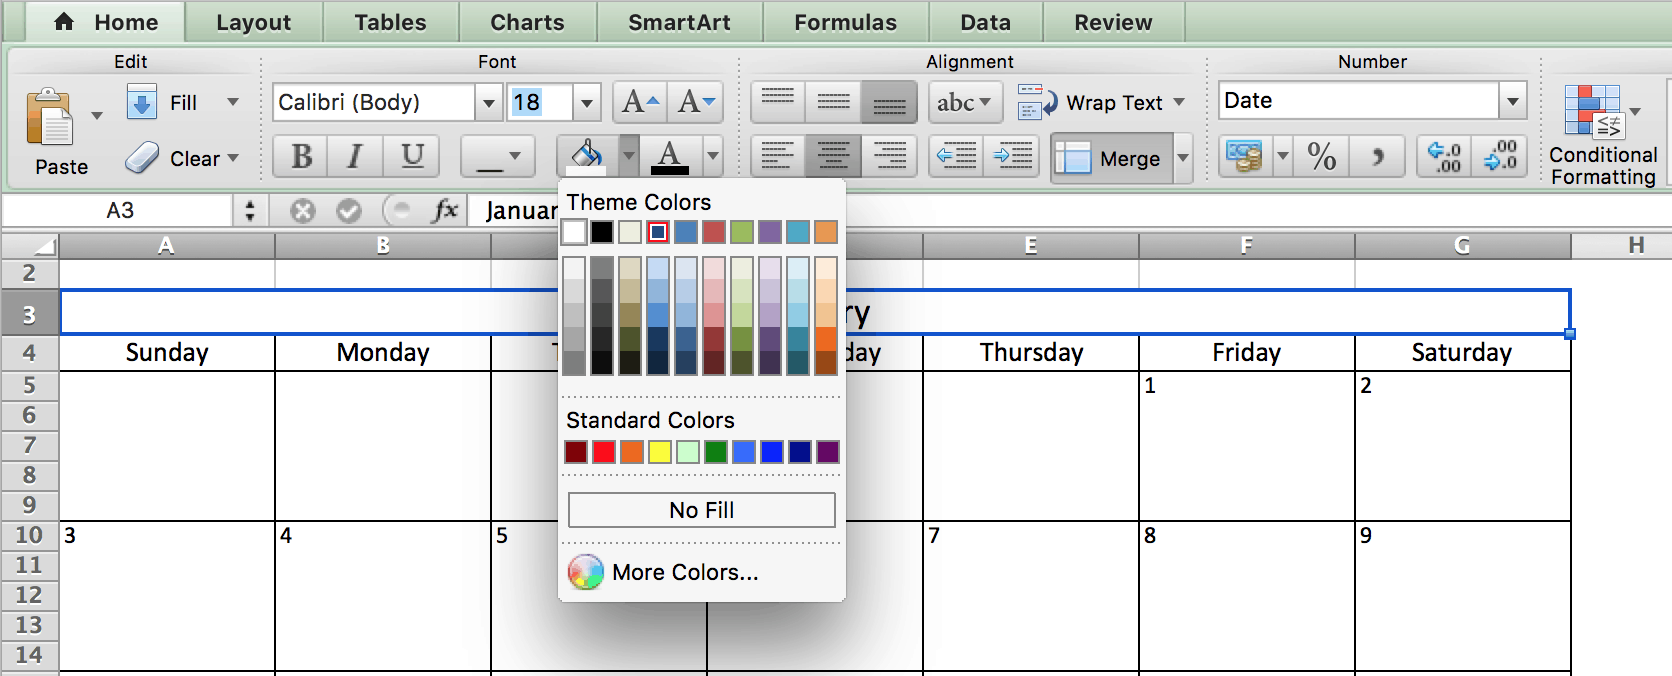 Ediblewildsus  Terrific Make A  Calendar In Excel Includes Free Template With Hot Choosing Colors  Calendar In Excel With Amazing Excel Shortcut Keys  Also Microsoft Excel  In Addition Excel Wedding Budget And Excel Dashboard Training As Well As Finding Slope In Excel Additionally Separating Columns In Excel From Smartsheetcom With Ediblewildsus  Hot Make A  Calendar In Excel Includes Free Template With Amazing Choosing Colors  Calendar In Excel And Terrific Excel Shortcut Keys  Also Microsoft Excel  In Addition Excel Wedding Budget From Smartsheetcom